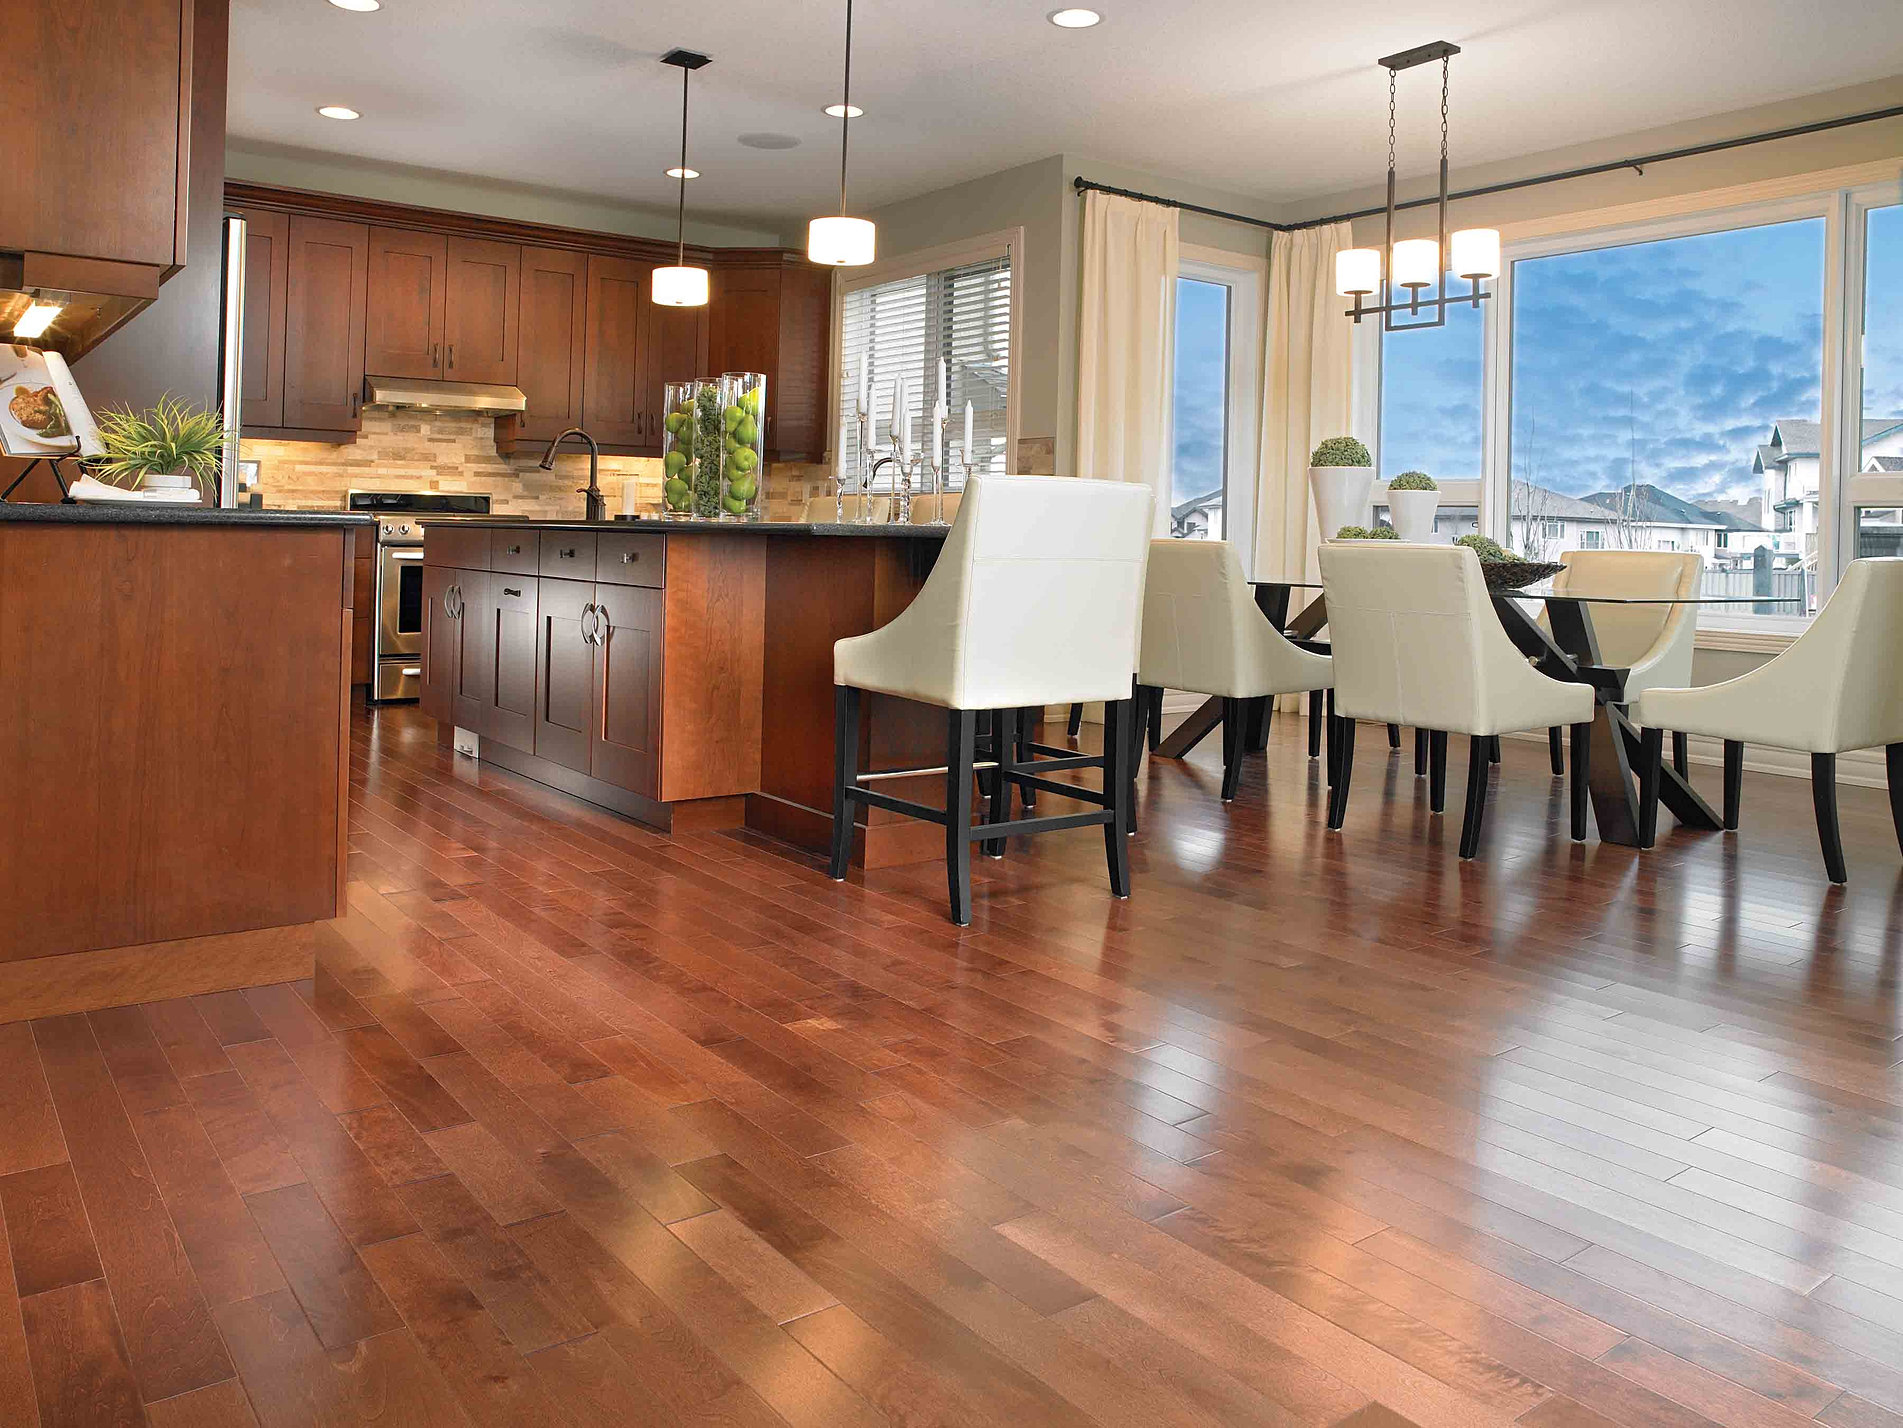 Hardwood Floor In The Kitchen Calvetta Brothers Floor Show 216 220 6473